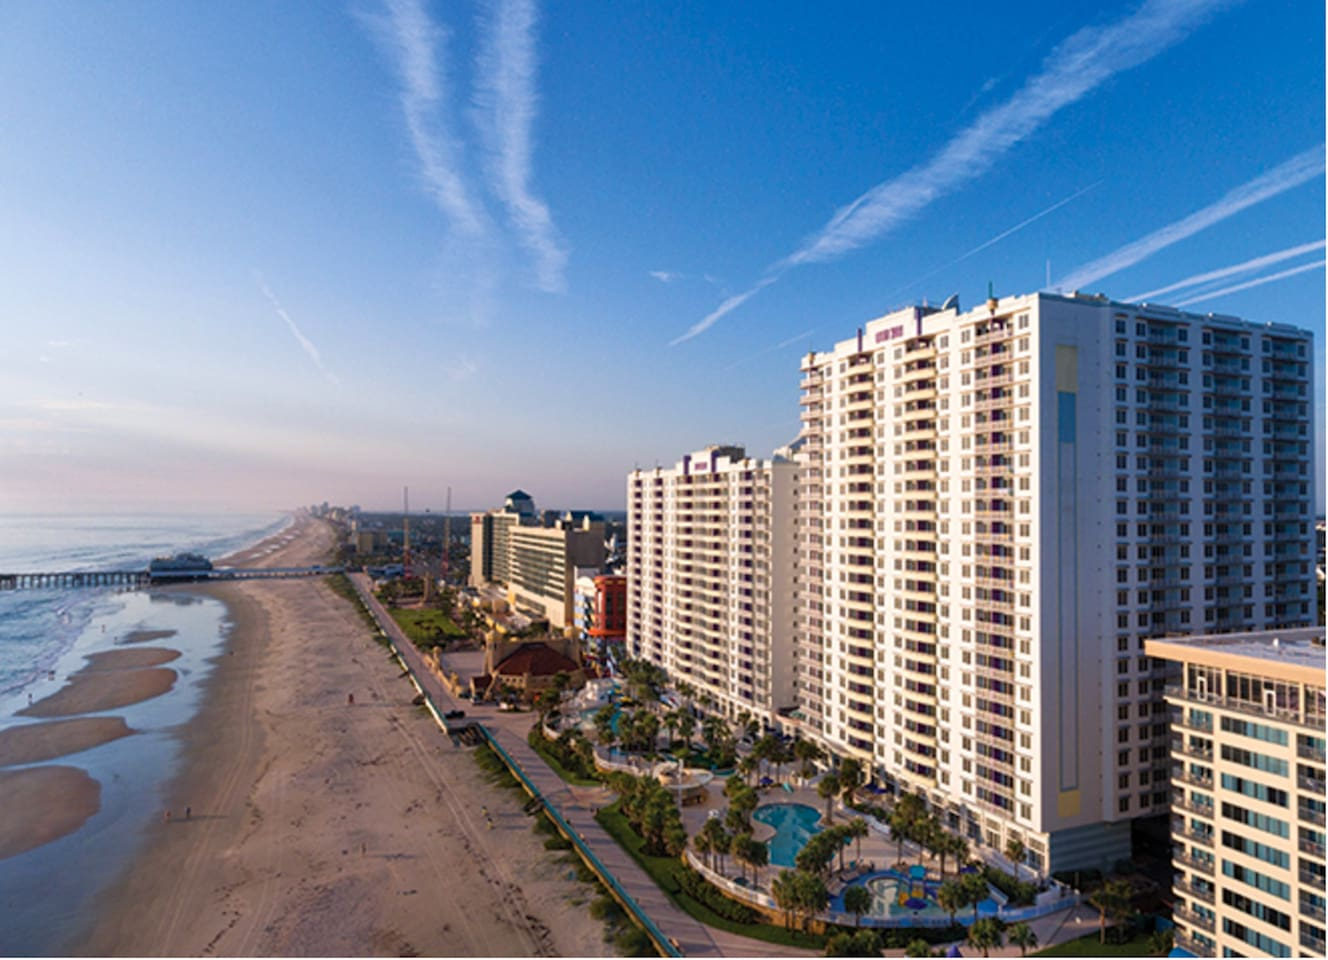 Your 2-bedroom, 2-bathroom vacation condo is located only a short walk-away from the beach